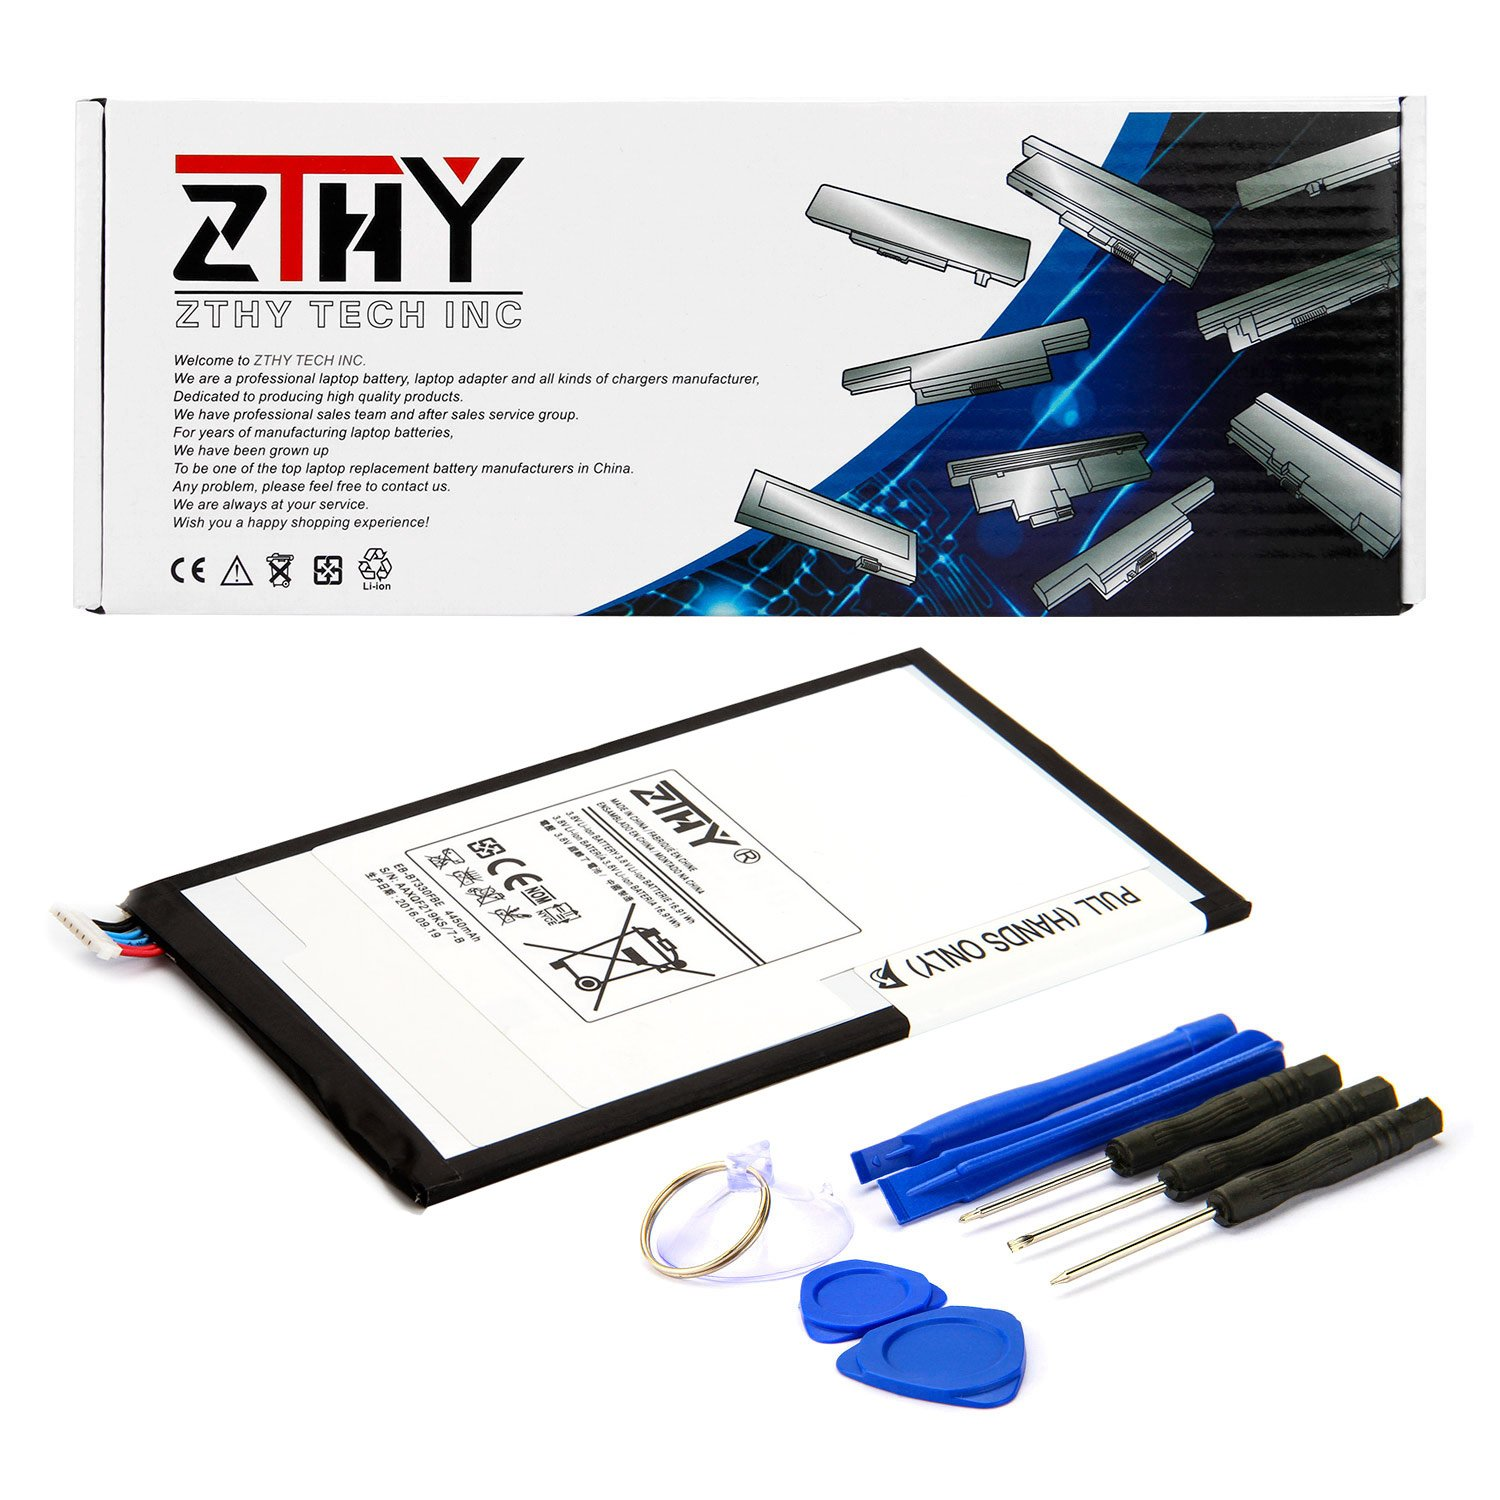 ZTHY Compatible EB-BT330FBE Tablet Replacement Battery for Samsung Galaxy Tab 4 8.0 T330 T331 T335 T337 T337A SM-T337T SM-T337V SM-T330NU Series EB-BT330FBU EB-BT330FBC 4450mAh with Tools